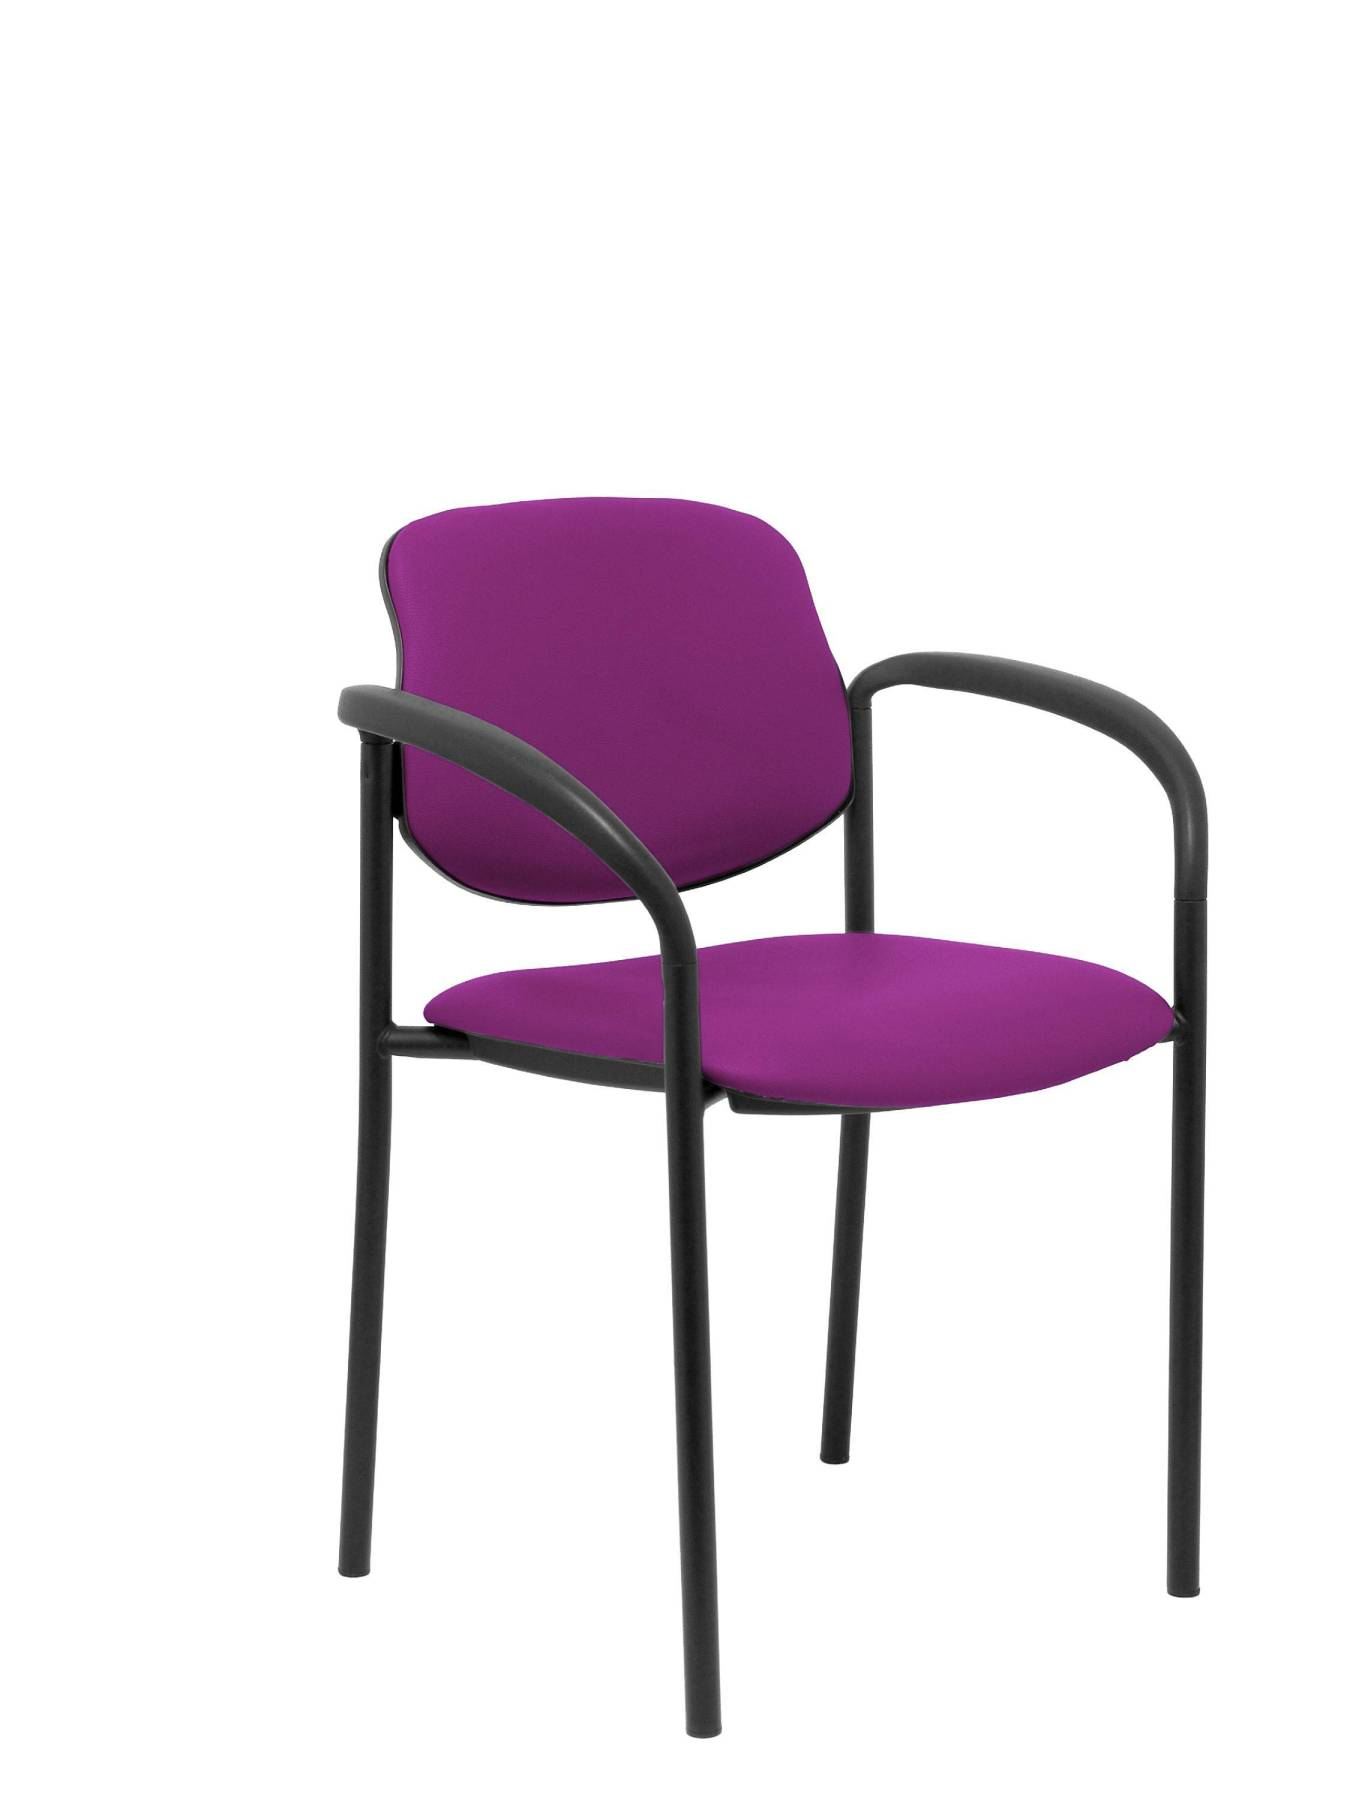 Visitor Chair 4's Topsy, With Arms And Estructrua Negro-up Seat And Backstop Upholstered In Tissue Similpiel Purplish PIQ